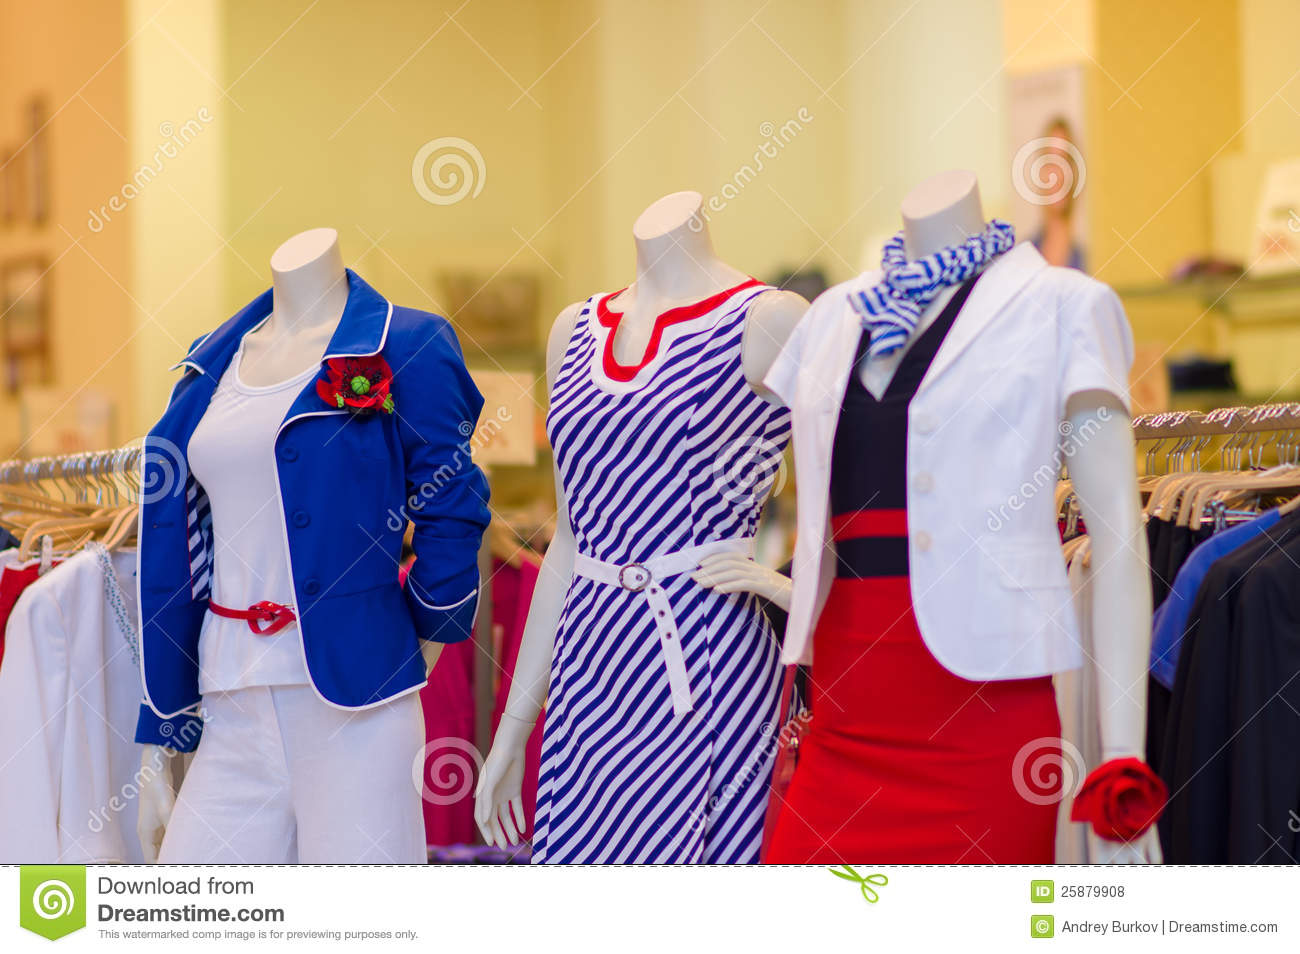 6a508c35f5fd At front of shop. Color dresses and suits on mannequins in mall. Color  dresses and suits on mannequins in